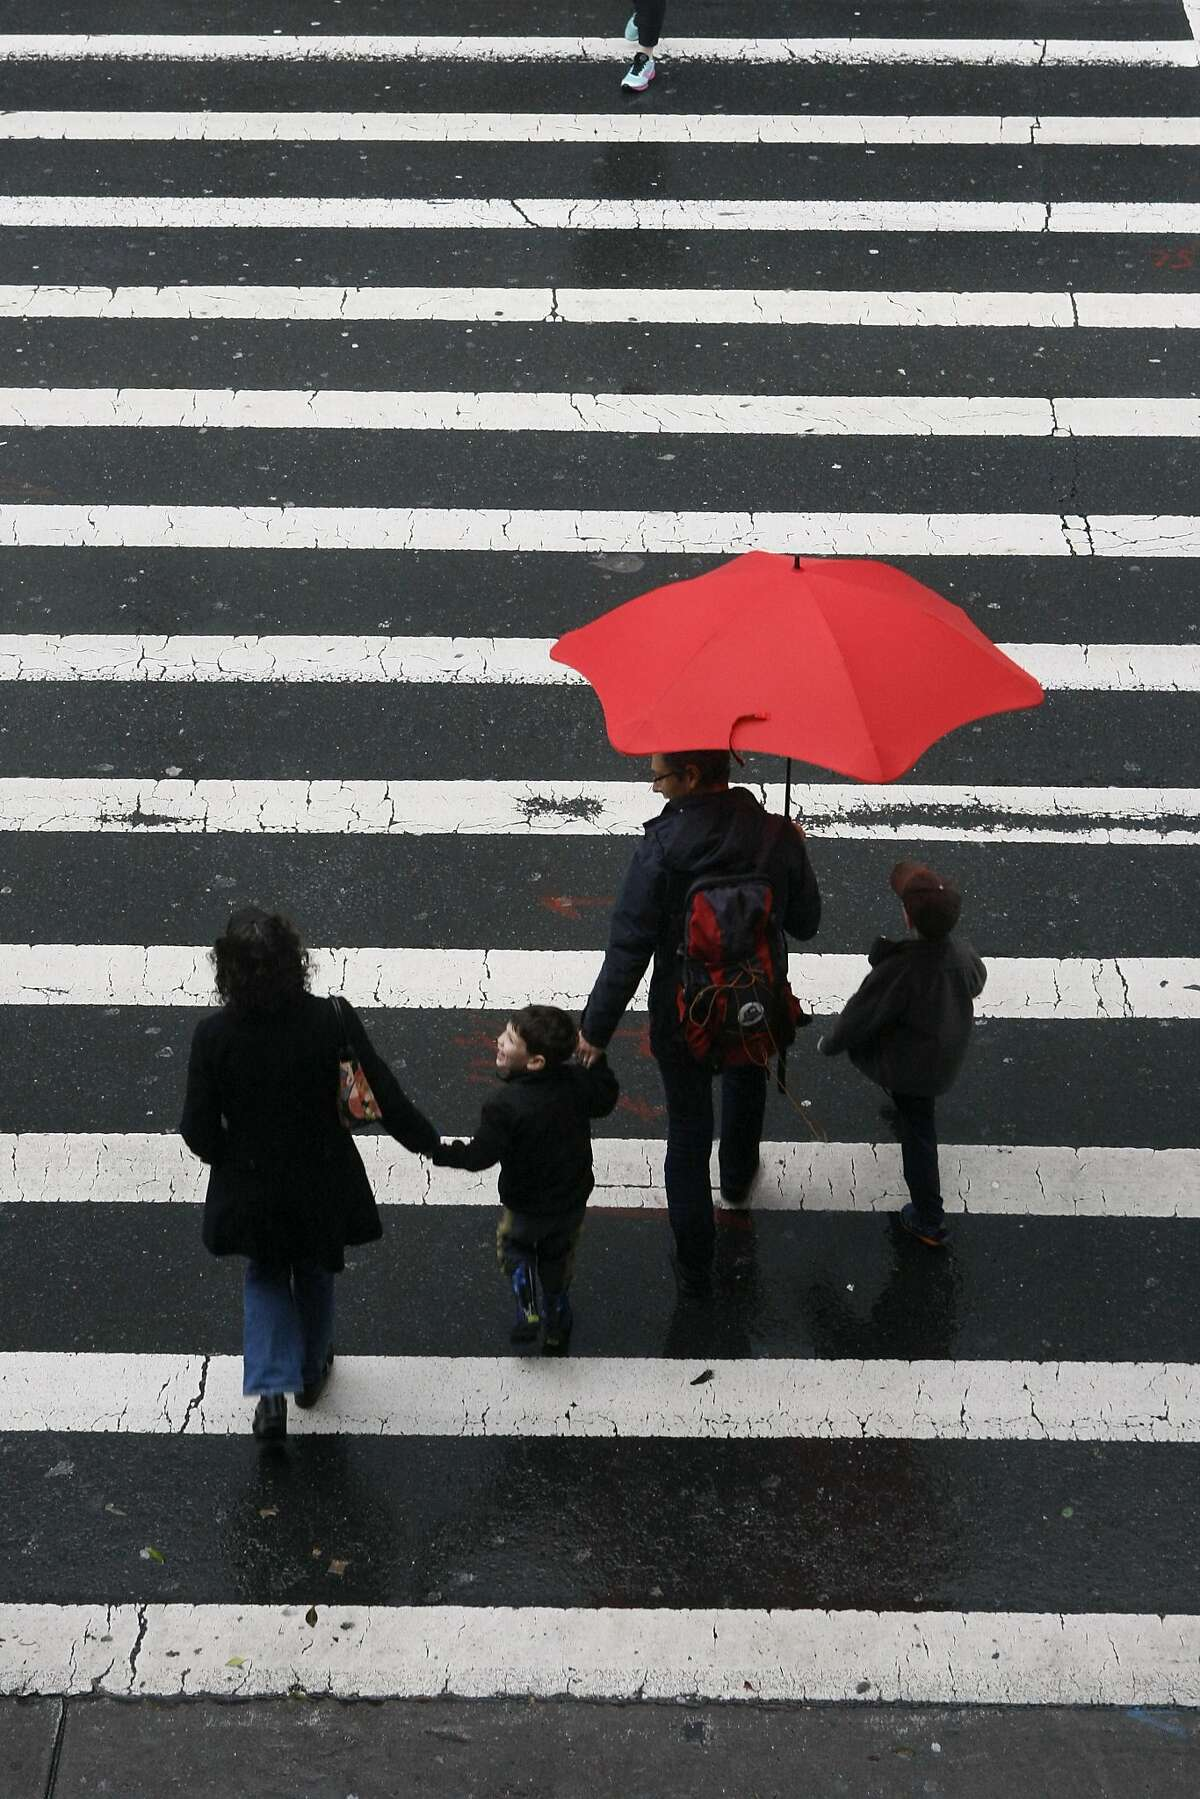 A family braves the wet weather on a rainy February 8, 2014 in San Francisco, Calif.